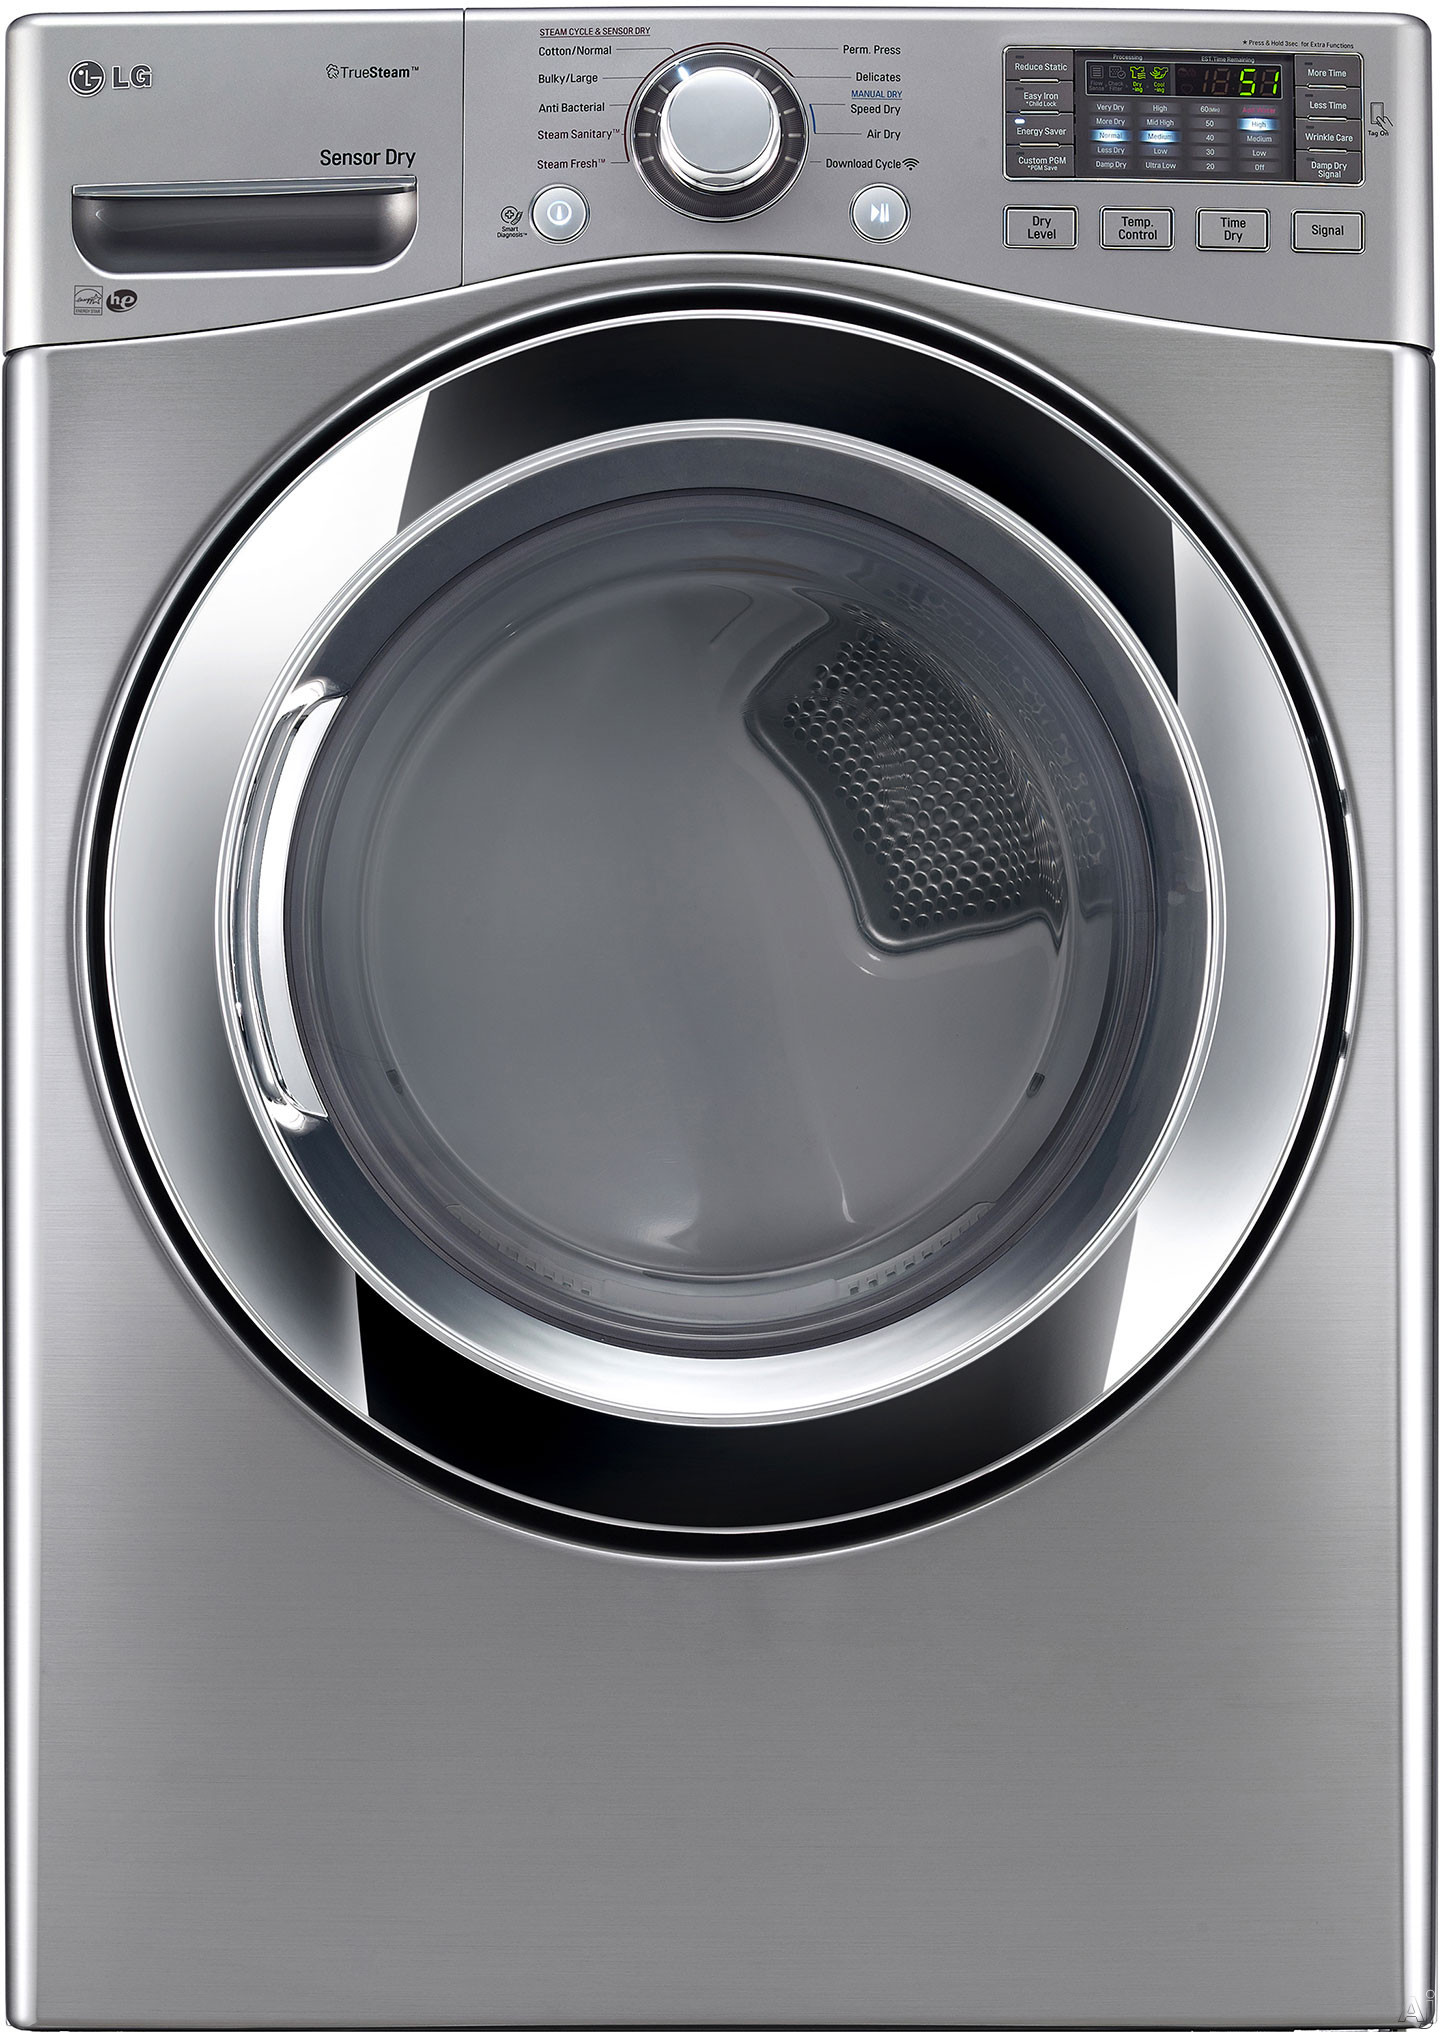 LG Laundry,LG Dryers,LG Electric Dryers